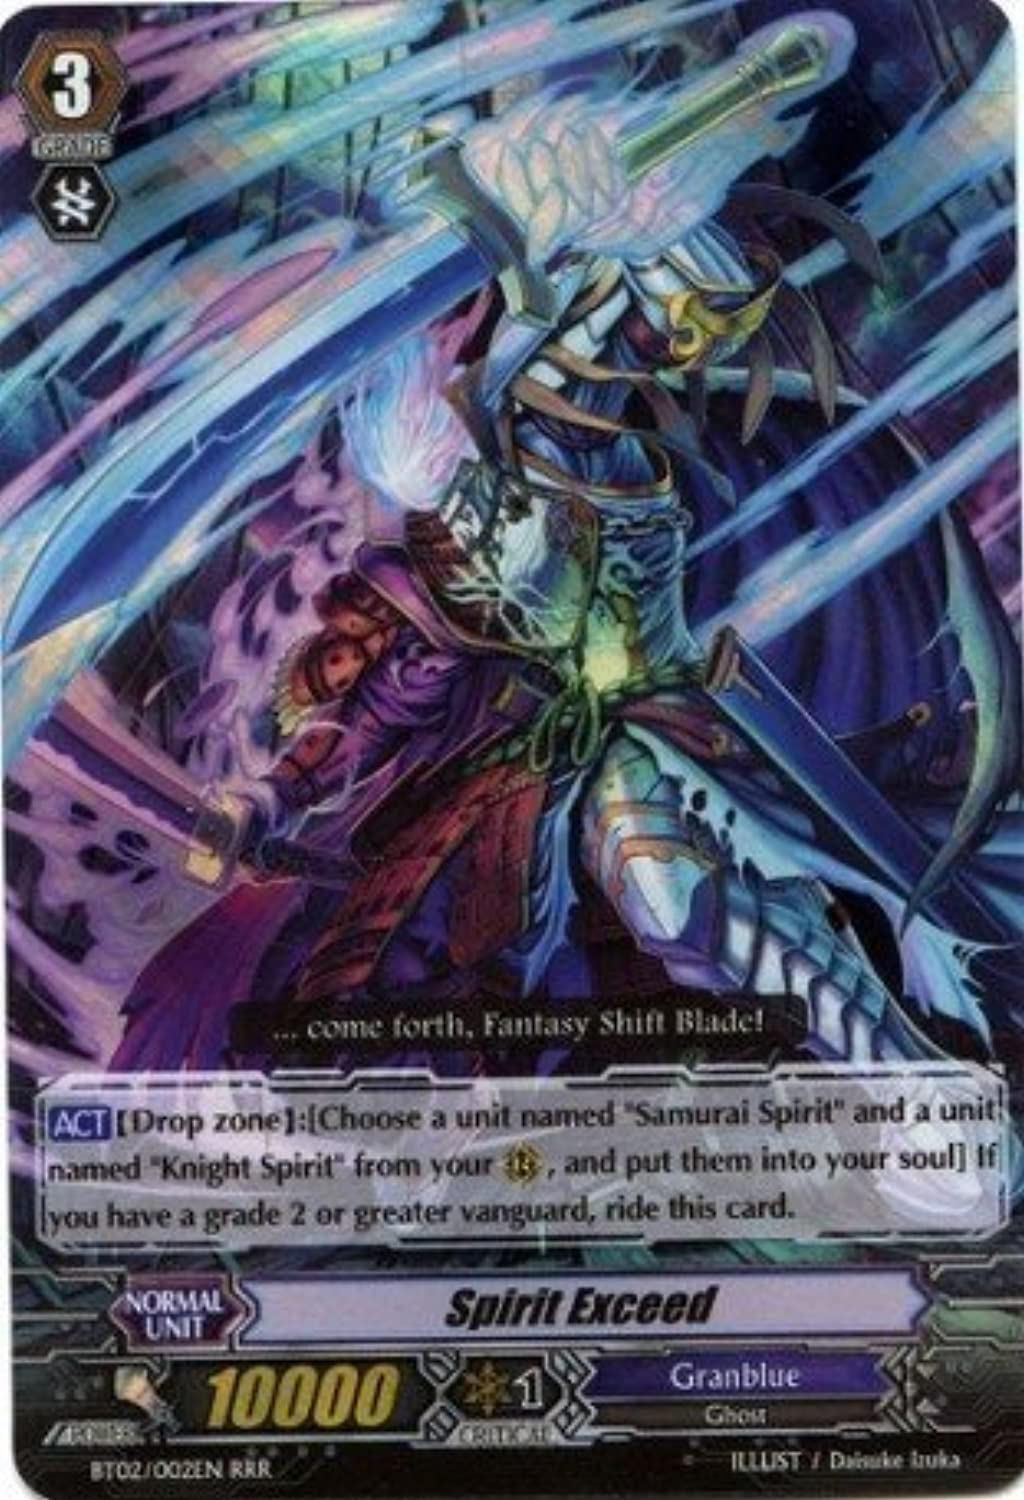 Cardfight   Vanguard TCG  Spirit Exceed (BT02 S02EN)  Onslaught of Dragon Souls by Cardfight   Vanguard TCG